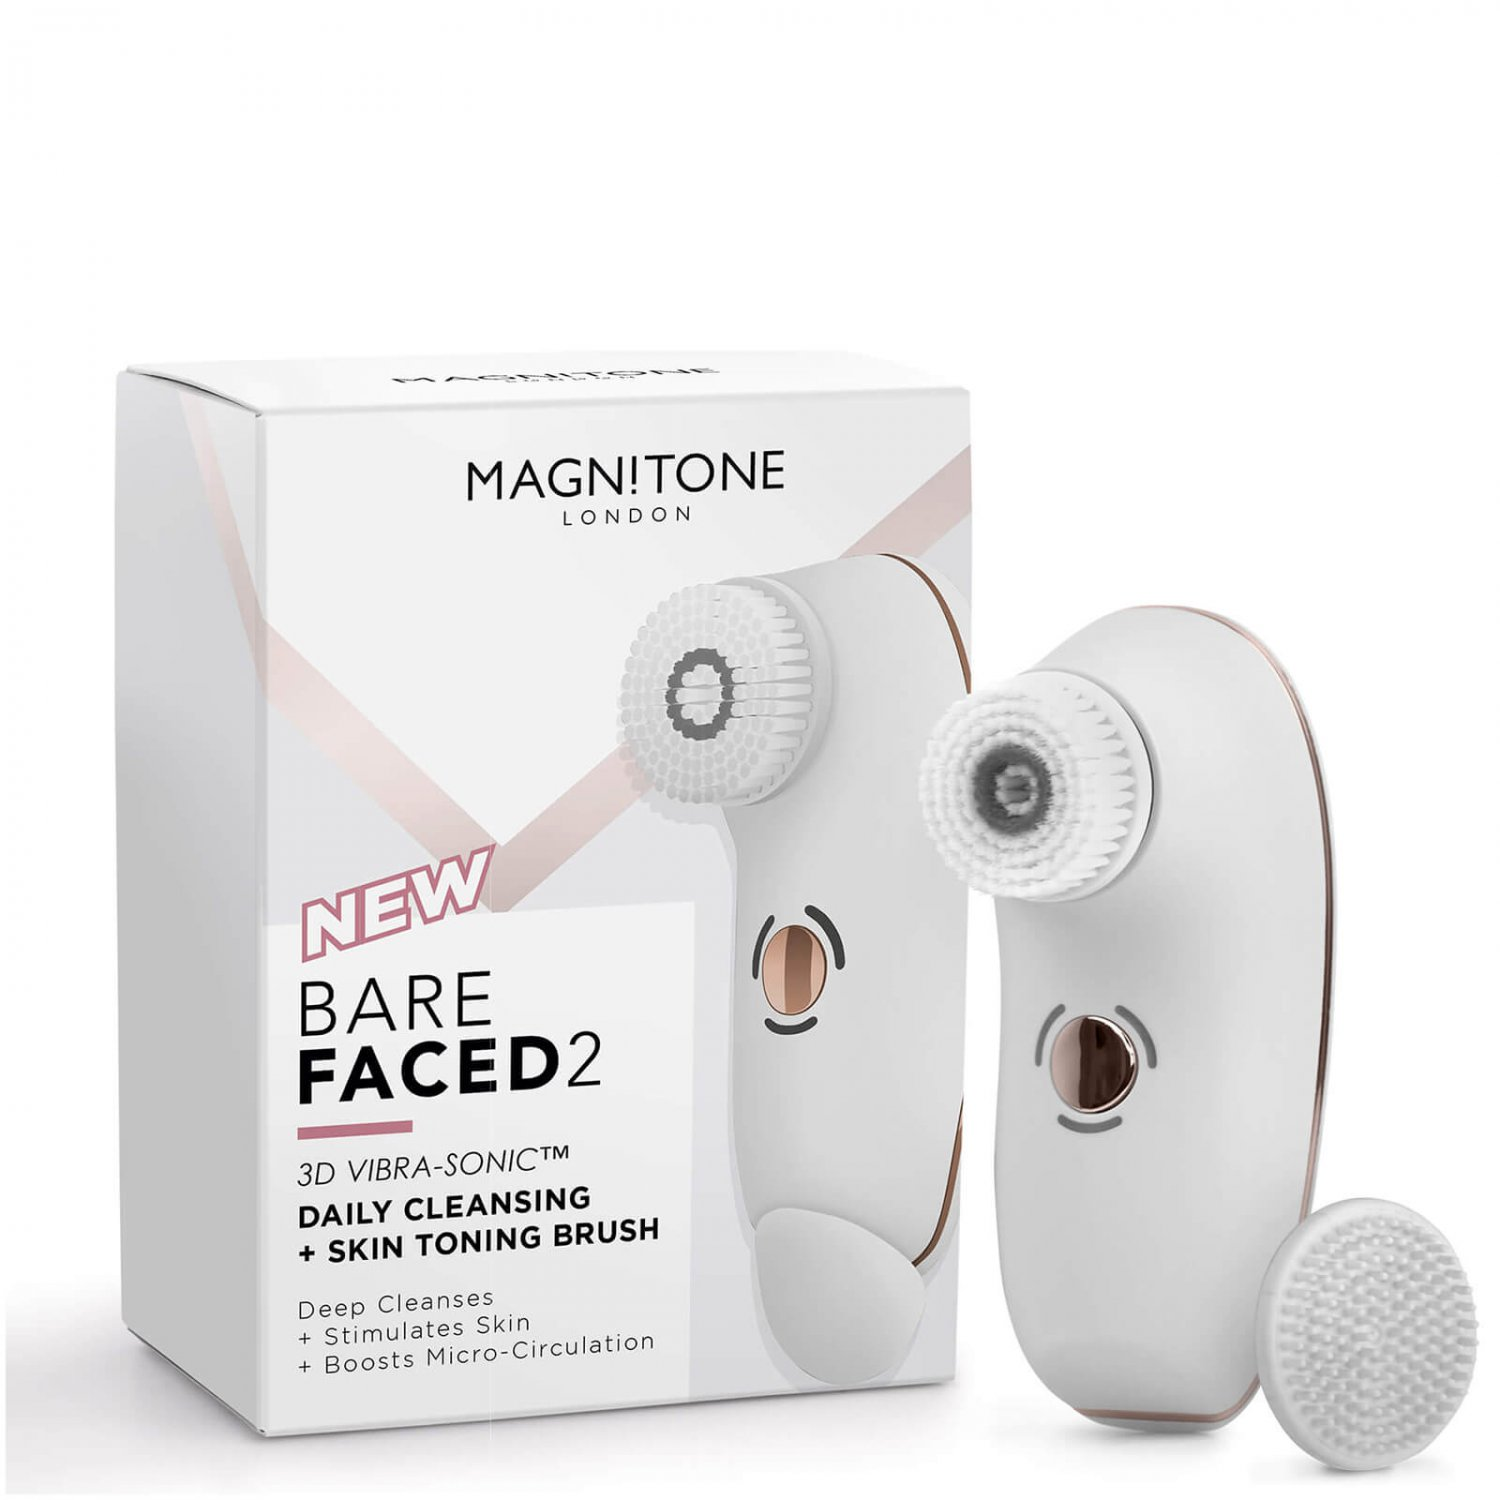 Magnitone London BareFaced 2 Daily Cleansing and Skin Toning Brush - White / Pink